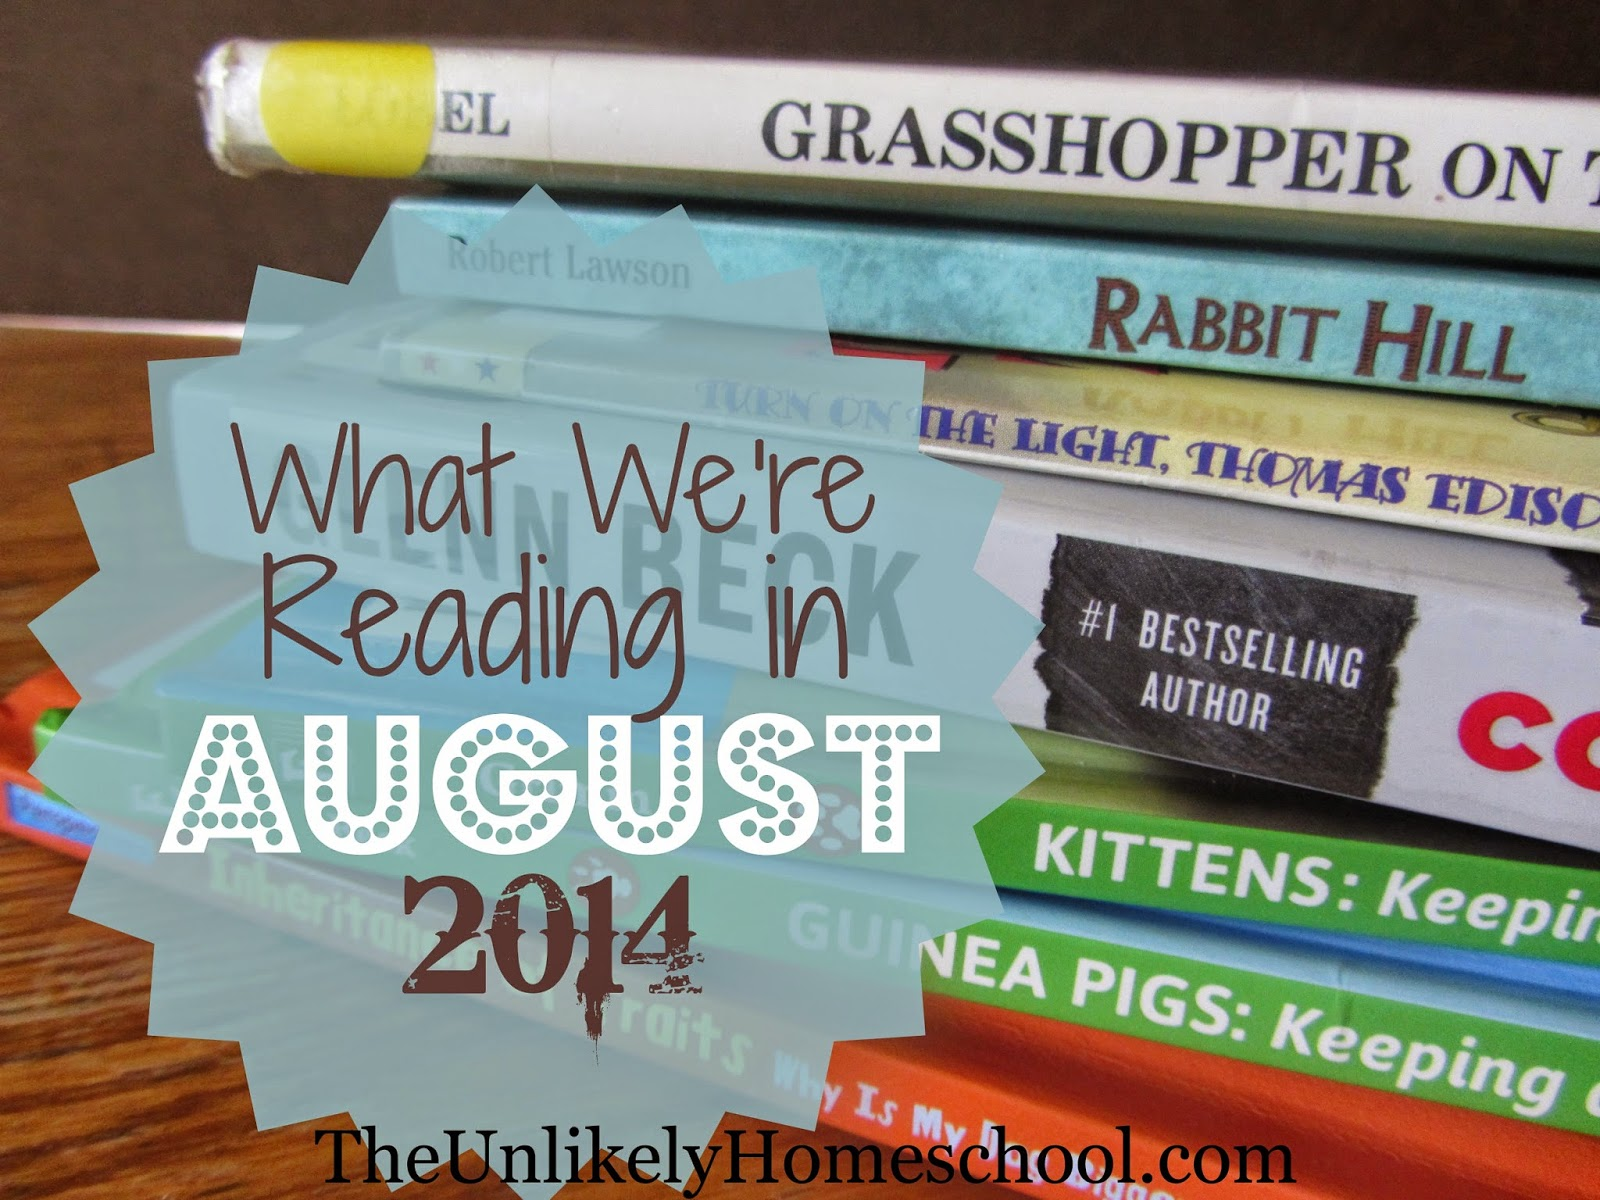 What We're Reading in August 2014 {The Unlikely Homeschool}